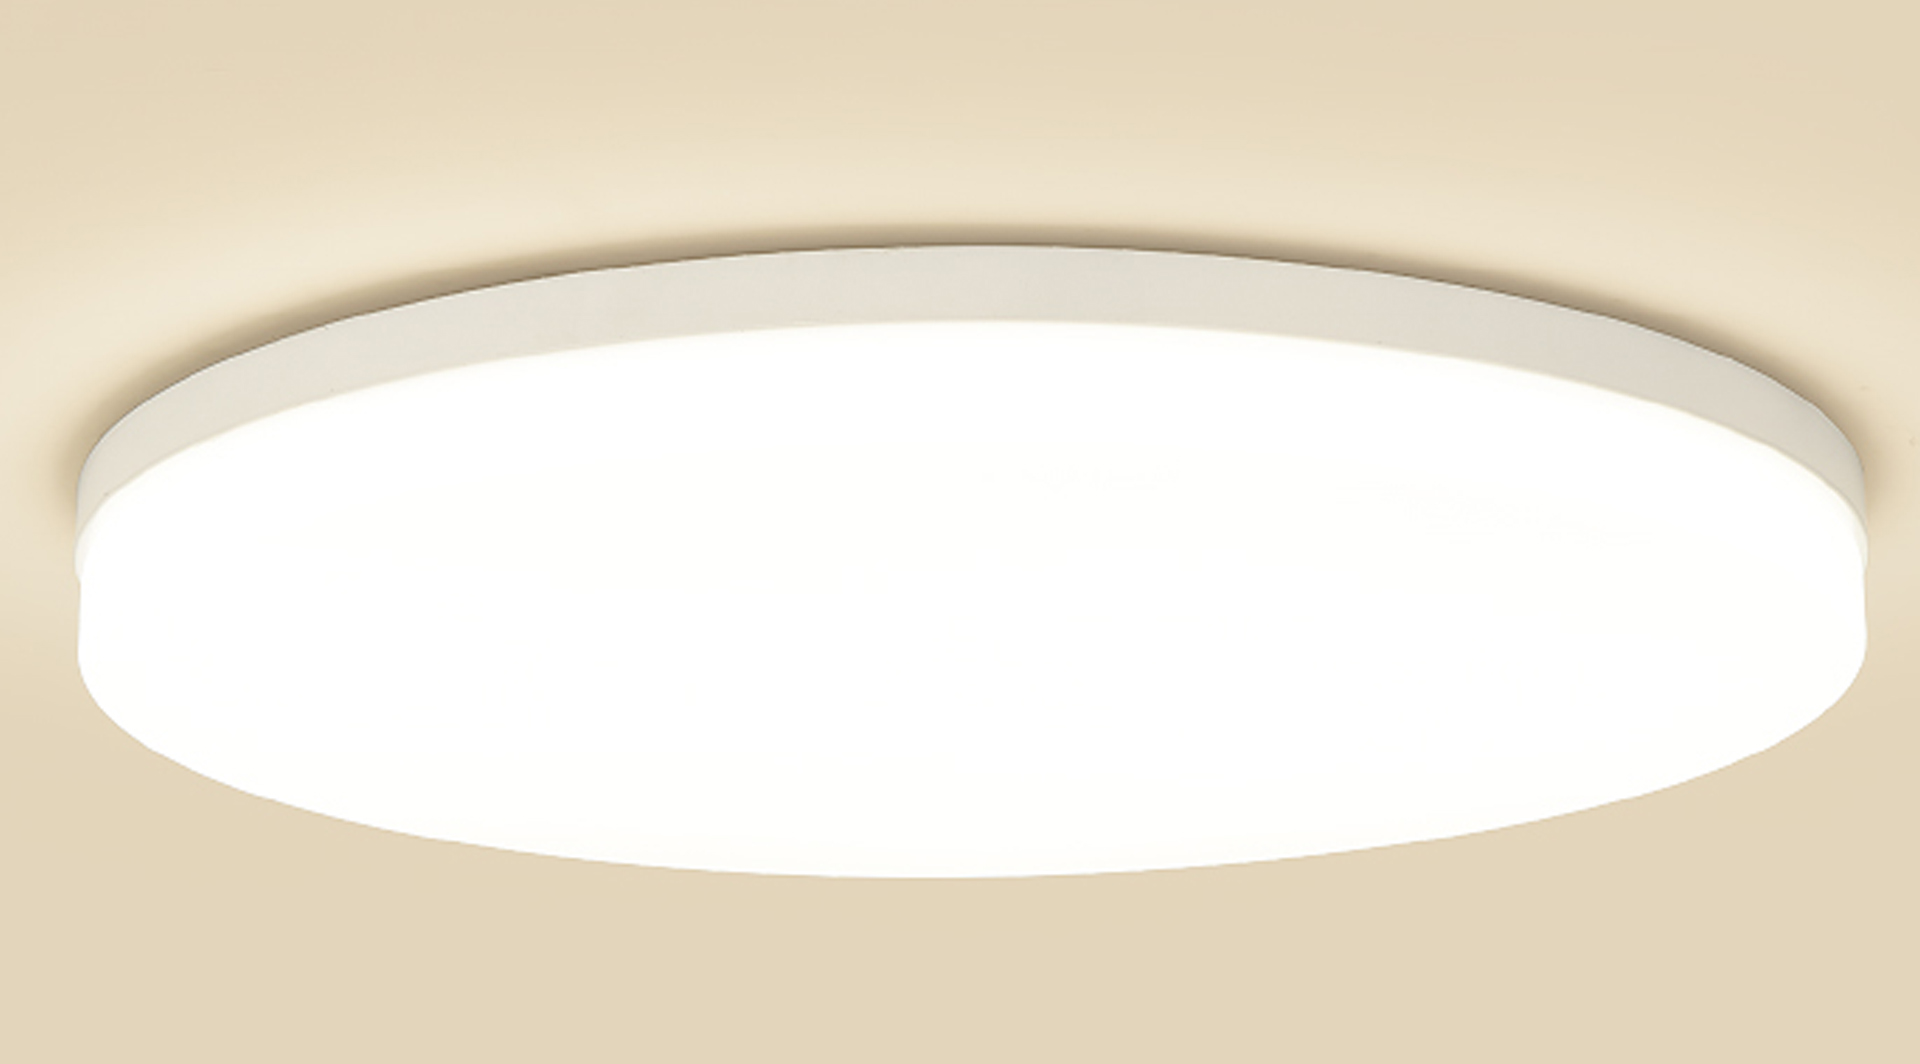 New! hot sales TUV certificated 3 years warranty 100lm/W IP33 acrylic indoor round led ceiling lights living room